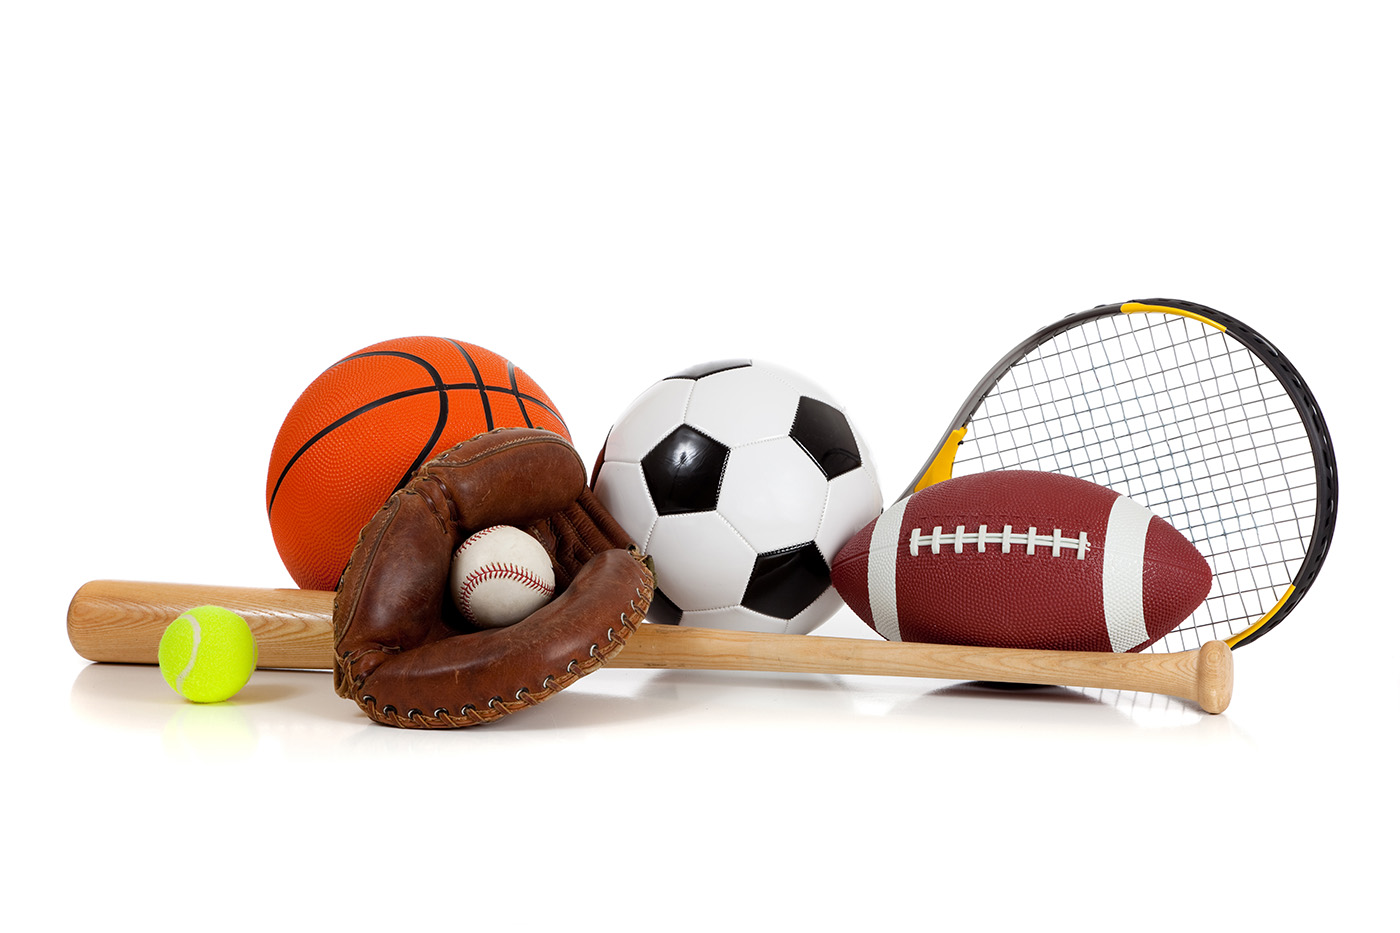 Baseball football and other sporting goods 50421